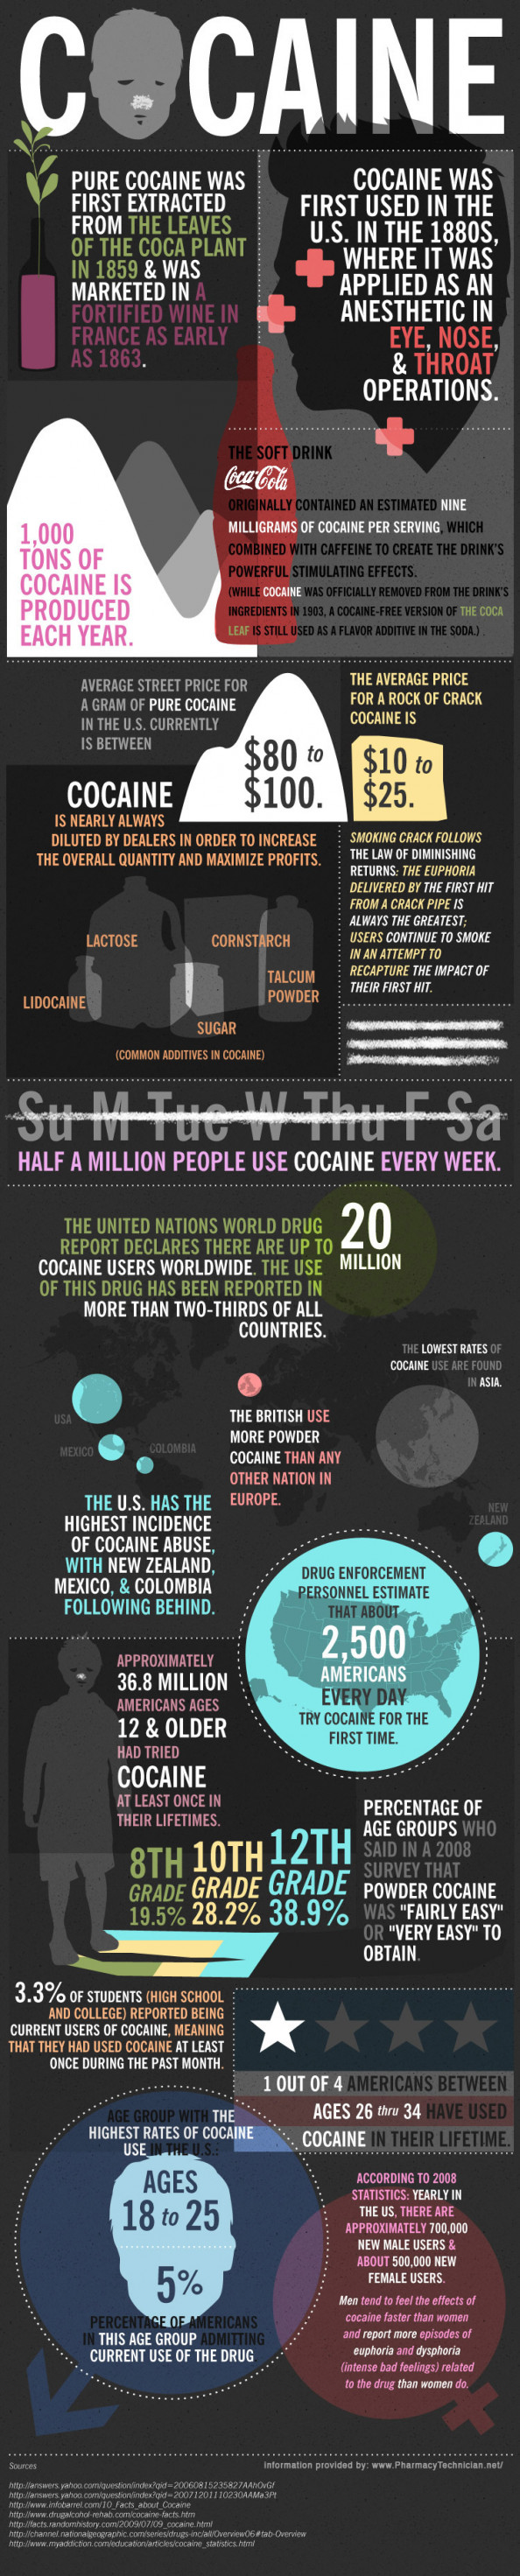 Cocaine  Infographic